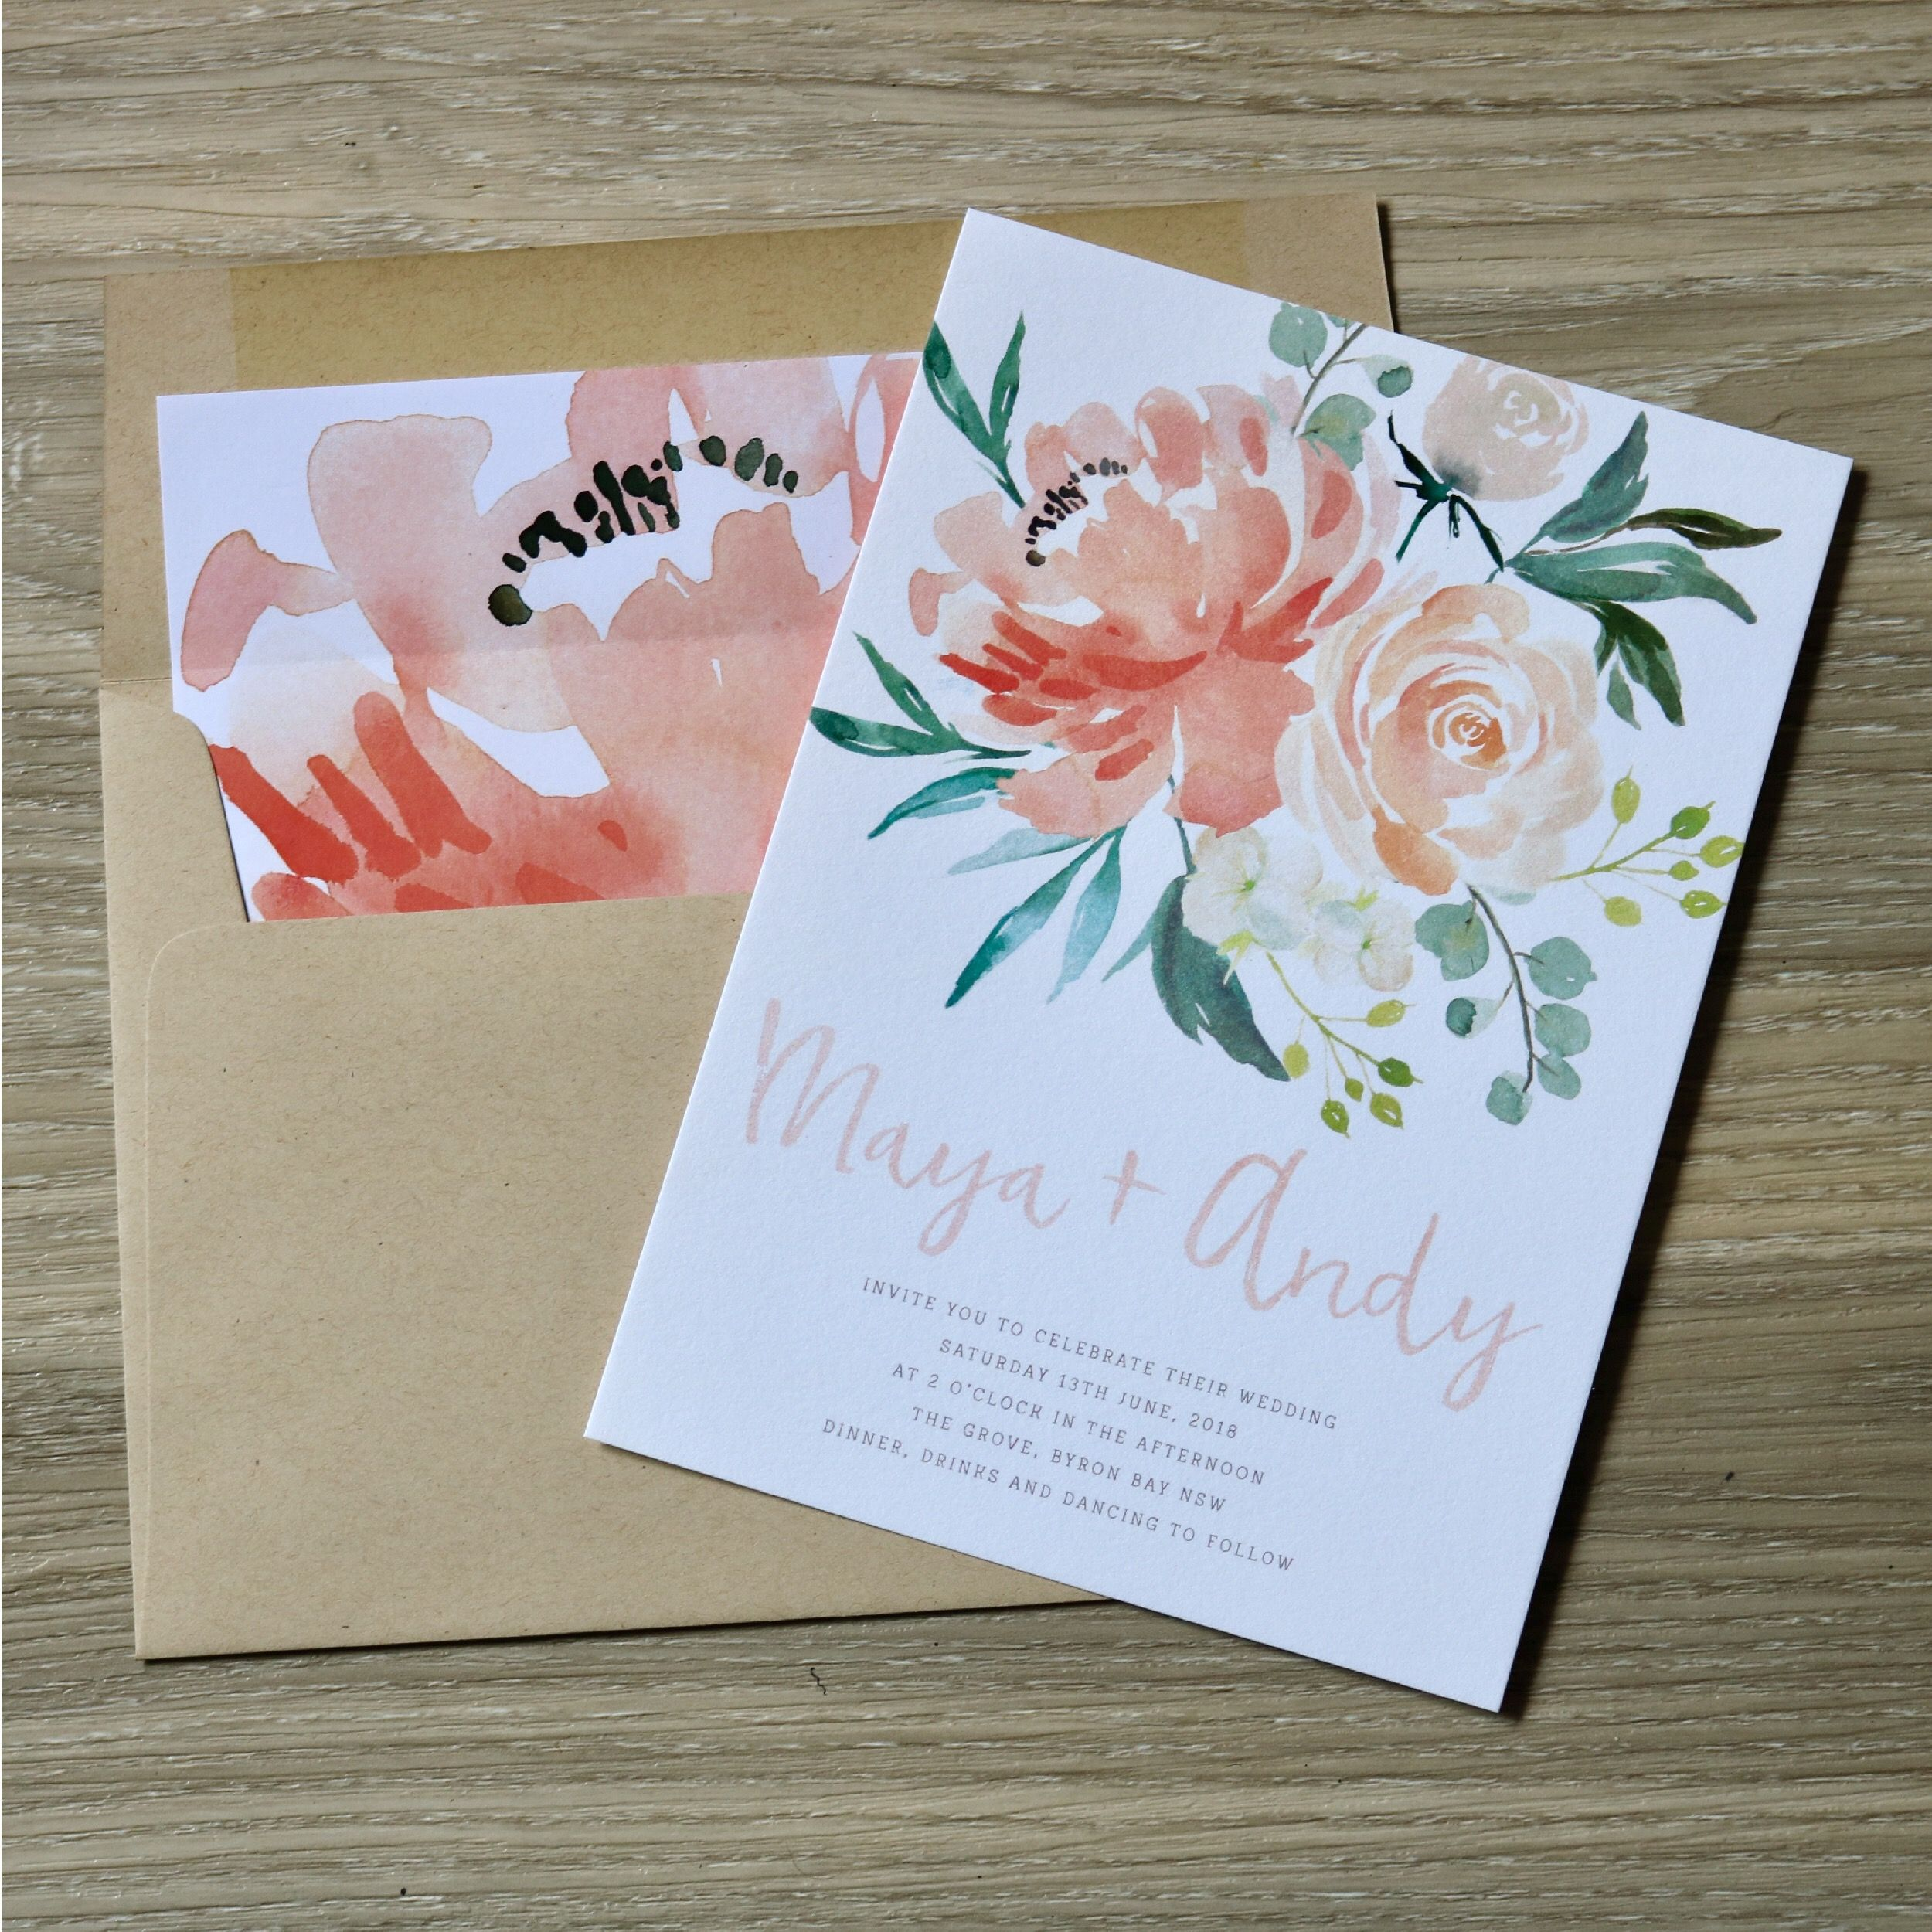 Floral Wedding Invitations | Garden Wedding Invitations | Apricot Invitations | Wedding Stationery | Matching envelope liner | Kraft envelope | Peach invitation | Garden Wedding | Botanical Wedding | Spring Wedding | Summer Wedding